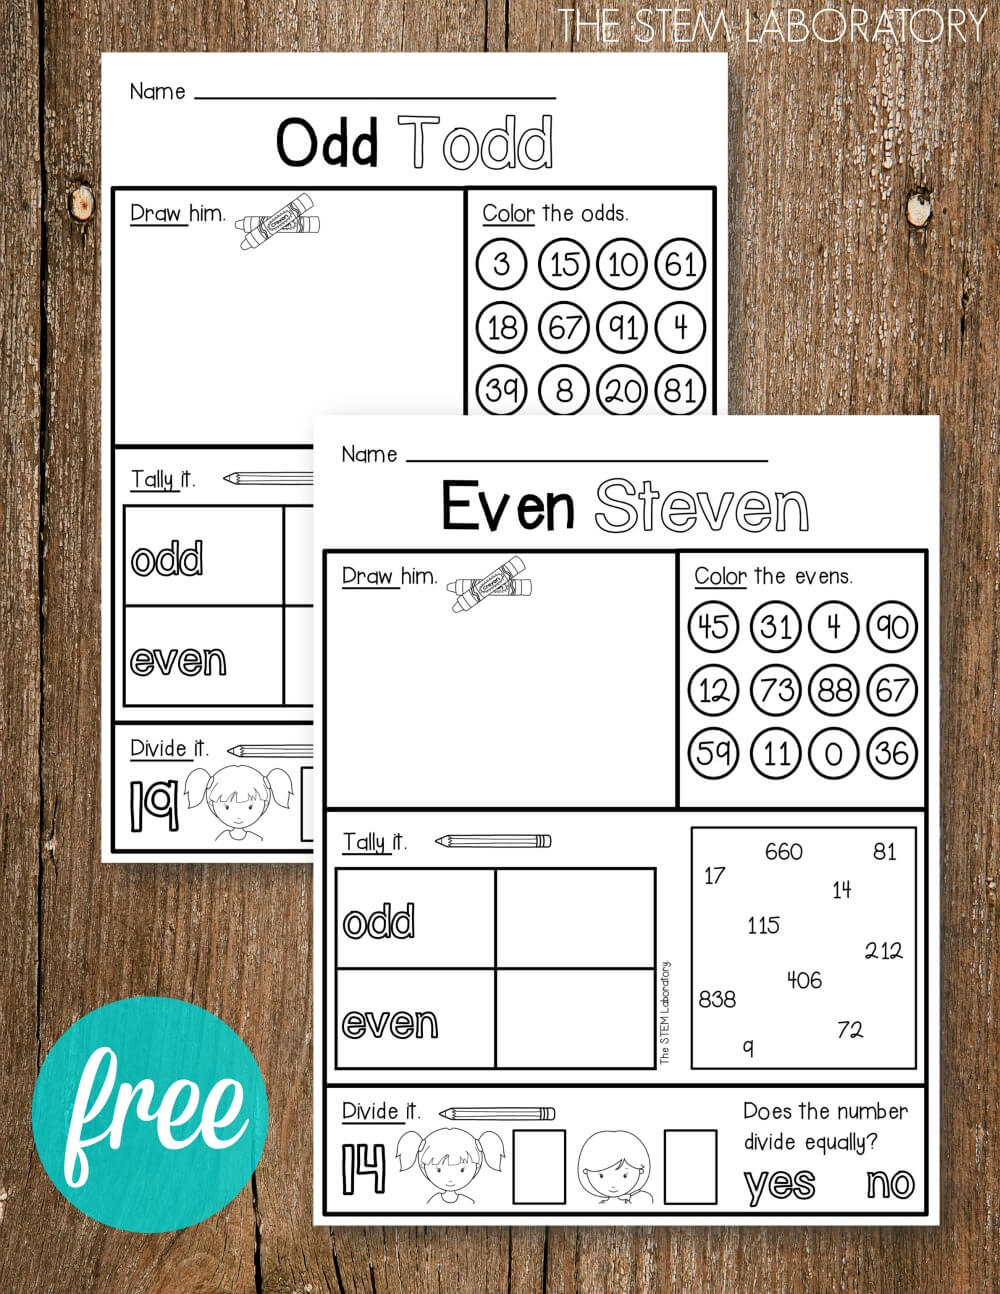 hight resolution of Odd and Even Activity Sheets - The Stem Laboratory